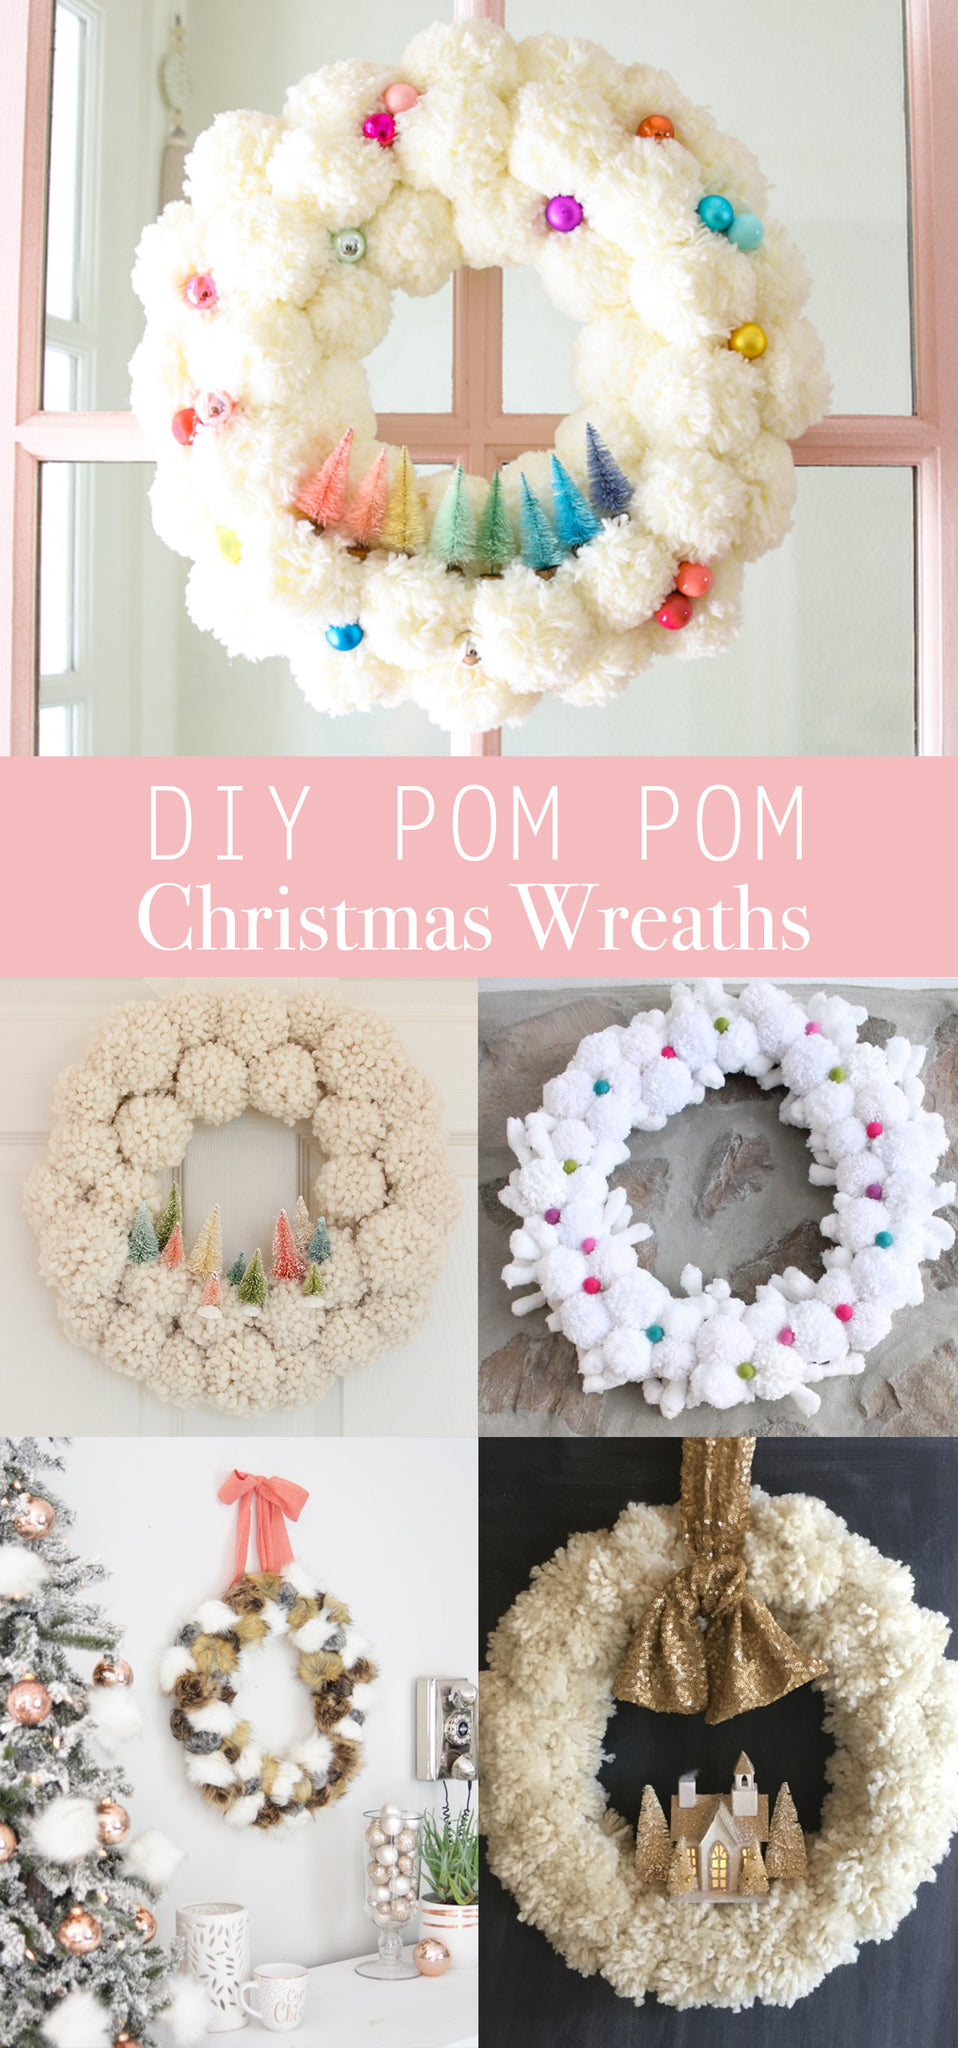 DIY Pom Pom Christmas Wreaths - DIY Christmas Decor - Christmas Crafts